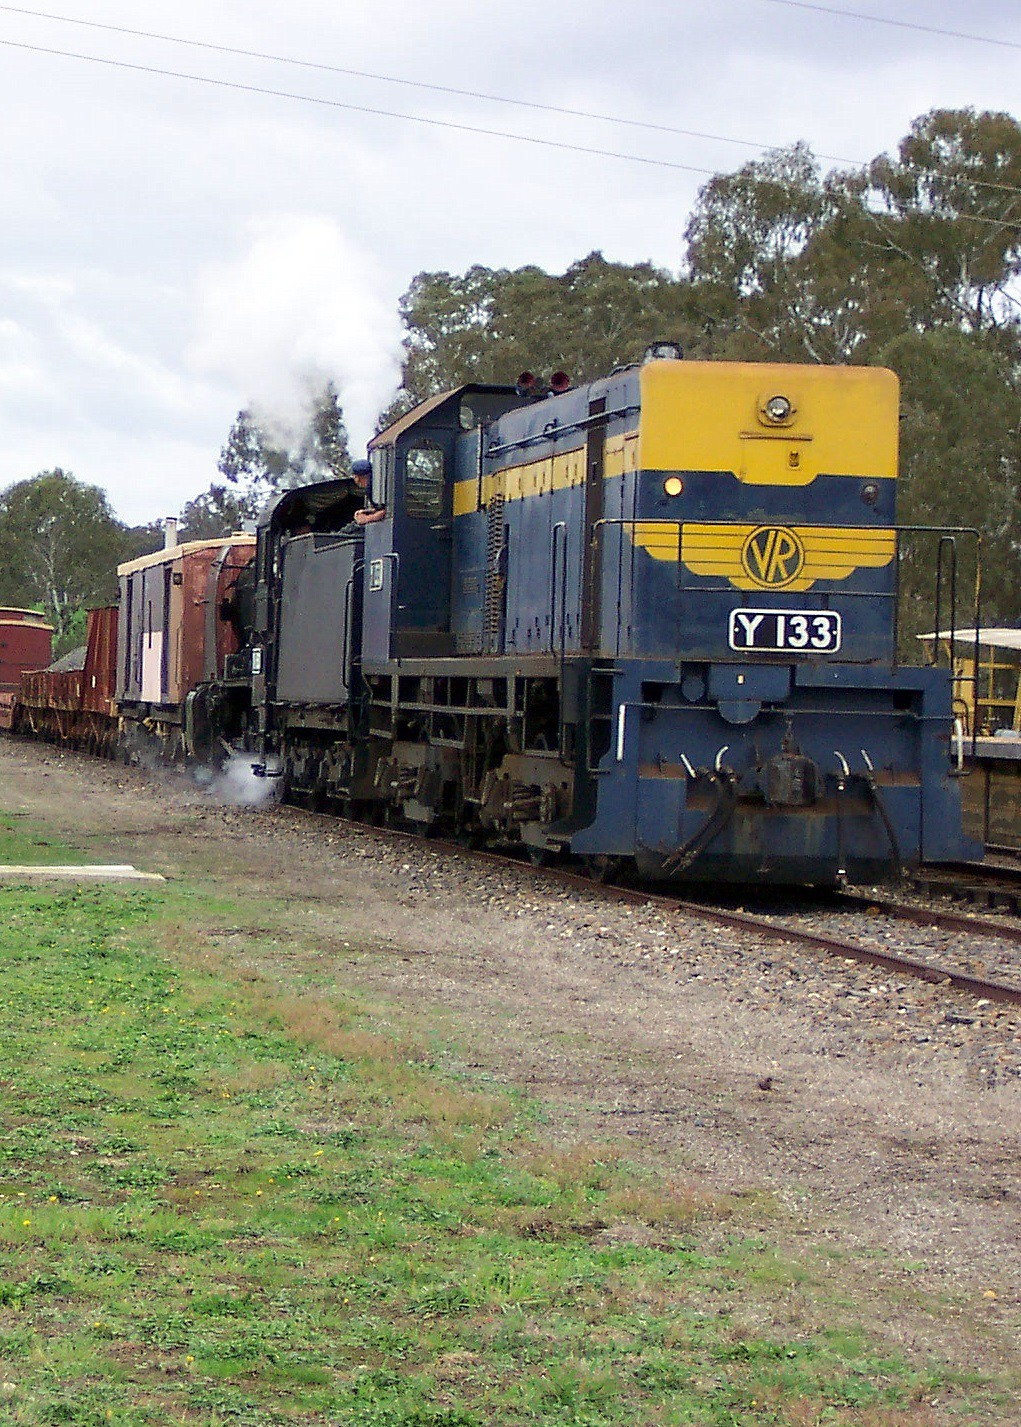 Y133 at Muckleford by LC501